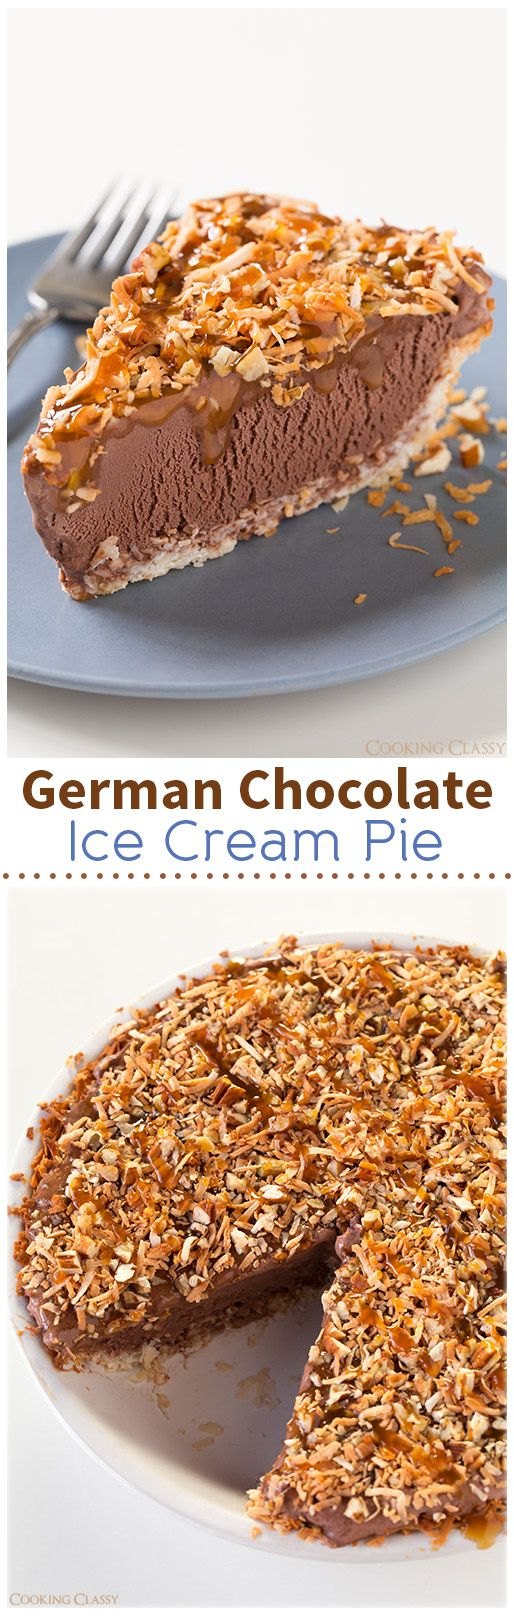 German Chocolate Ice Cream Pie by cookingclassy: Made with a coconut crust then layered with chocolate ice cream, toasted pecans, toasted coconut and caramel sauce! Easy to make and completely delicious.#Ice_Cream_Pie #Chocolate #Coconut #GF #Easy